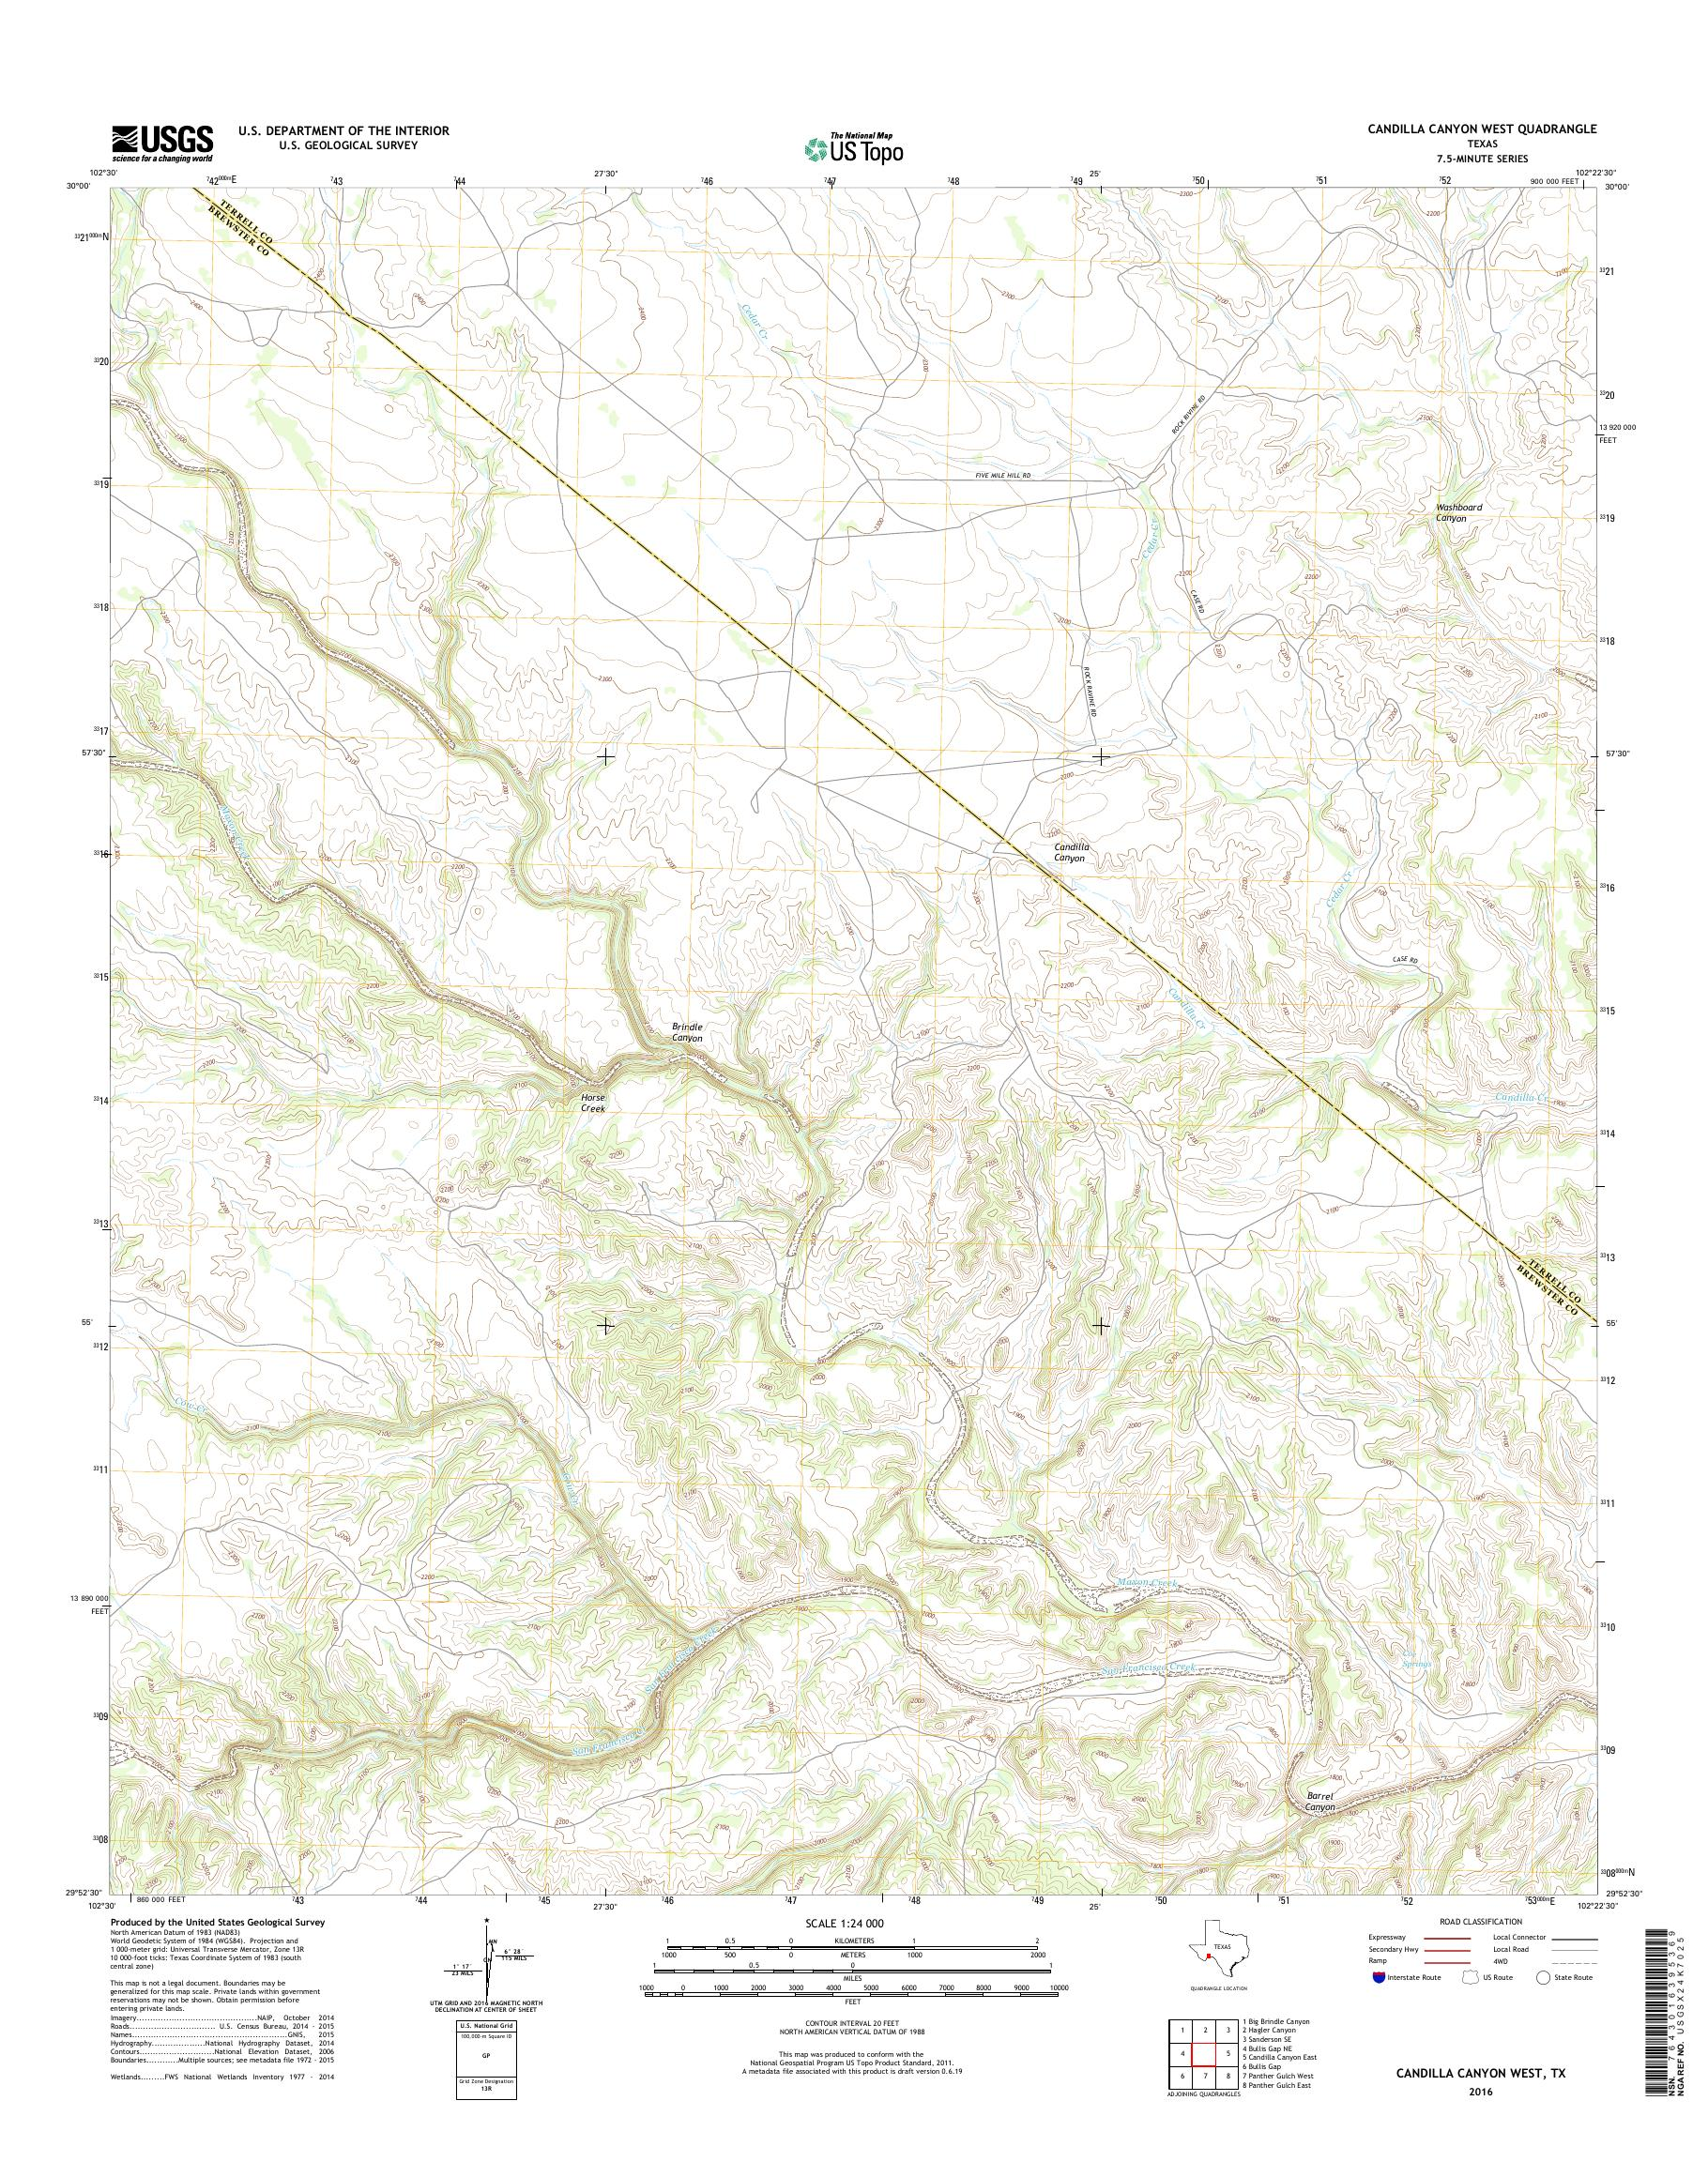 MyTopo Candilla Canyon West, Texas USGS Quad Topo Map